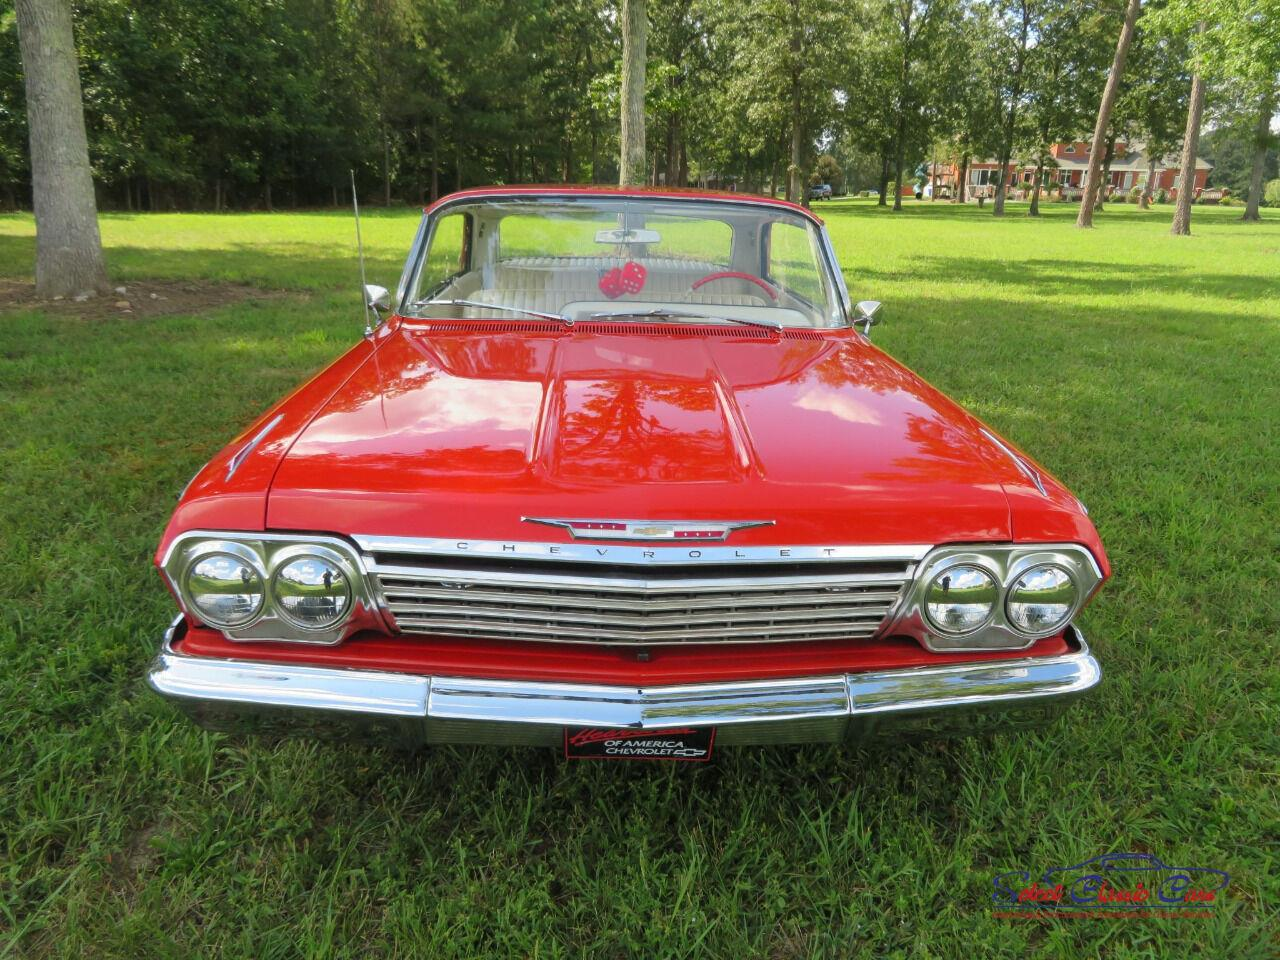 1962 Chevrolet Impala (CC-1413164) for sale in Hiram, Georgia